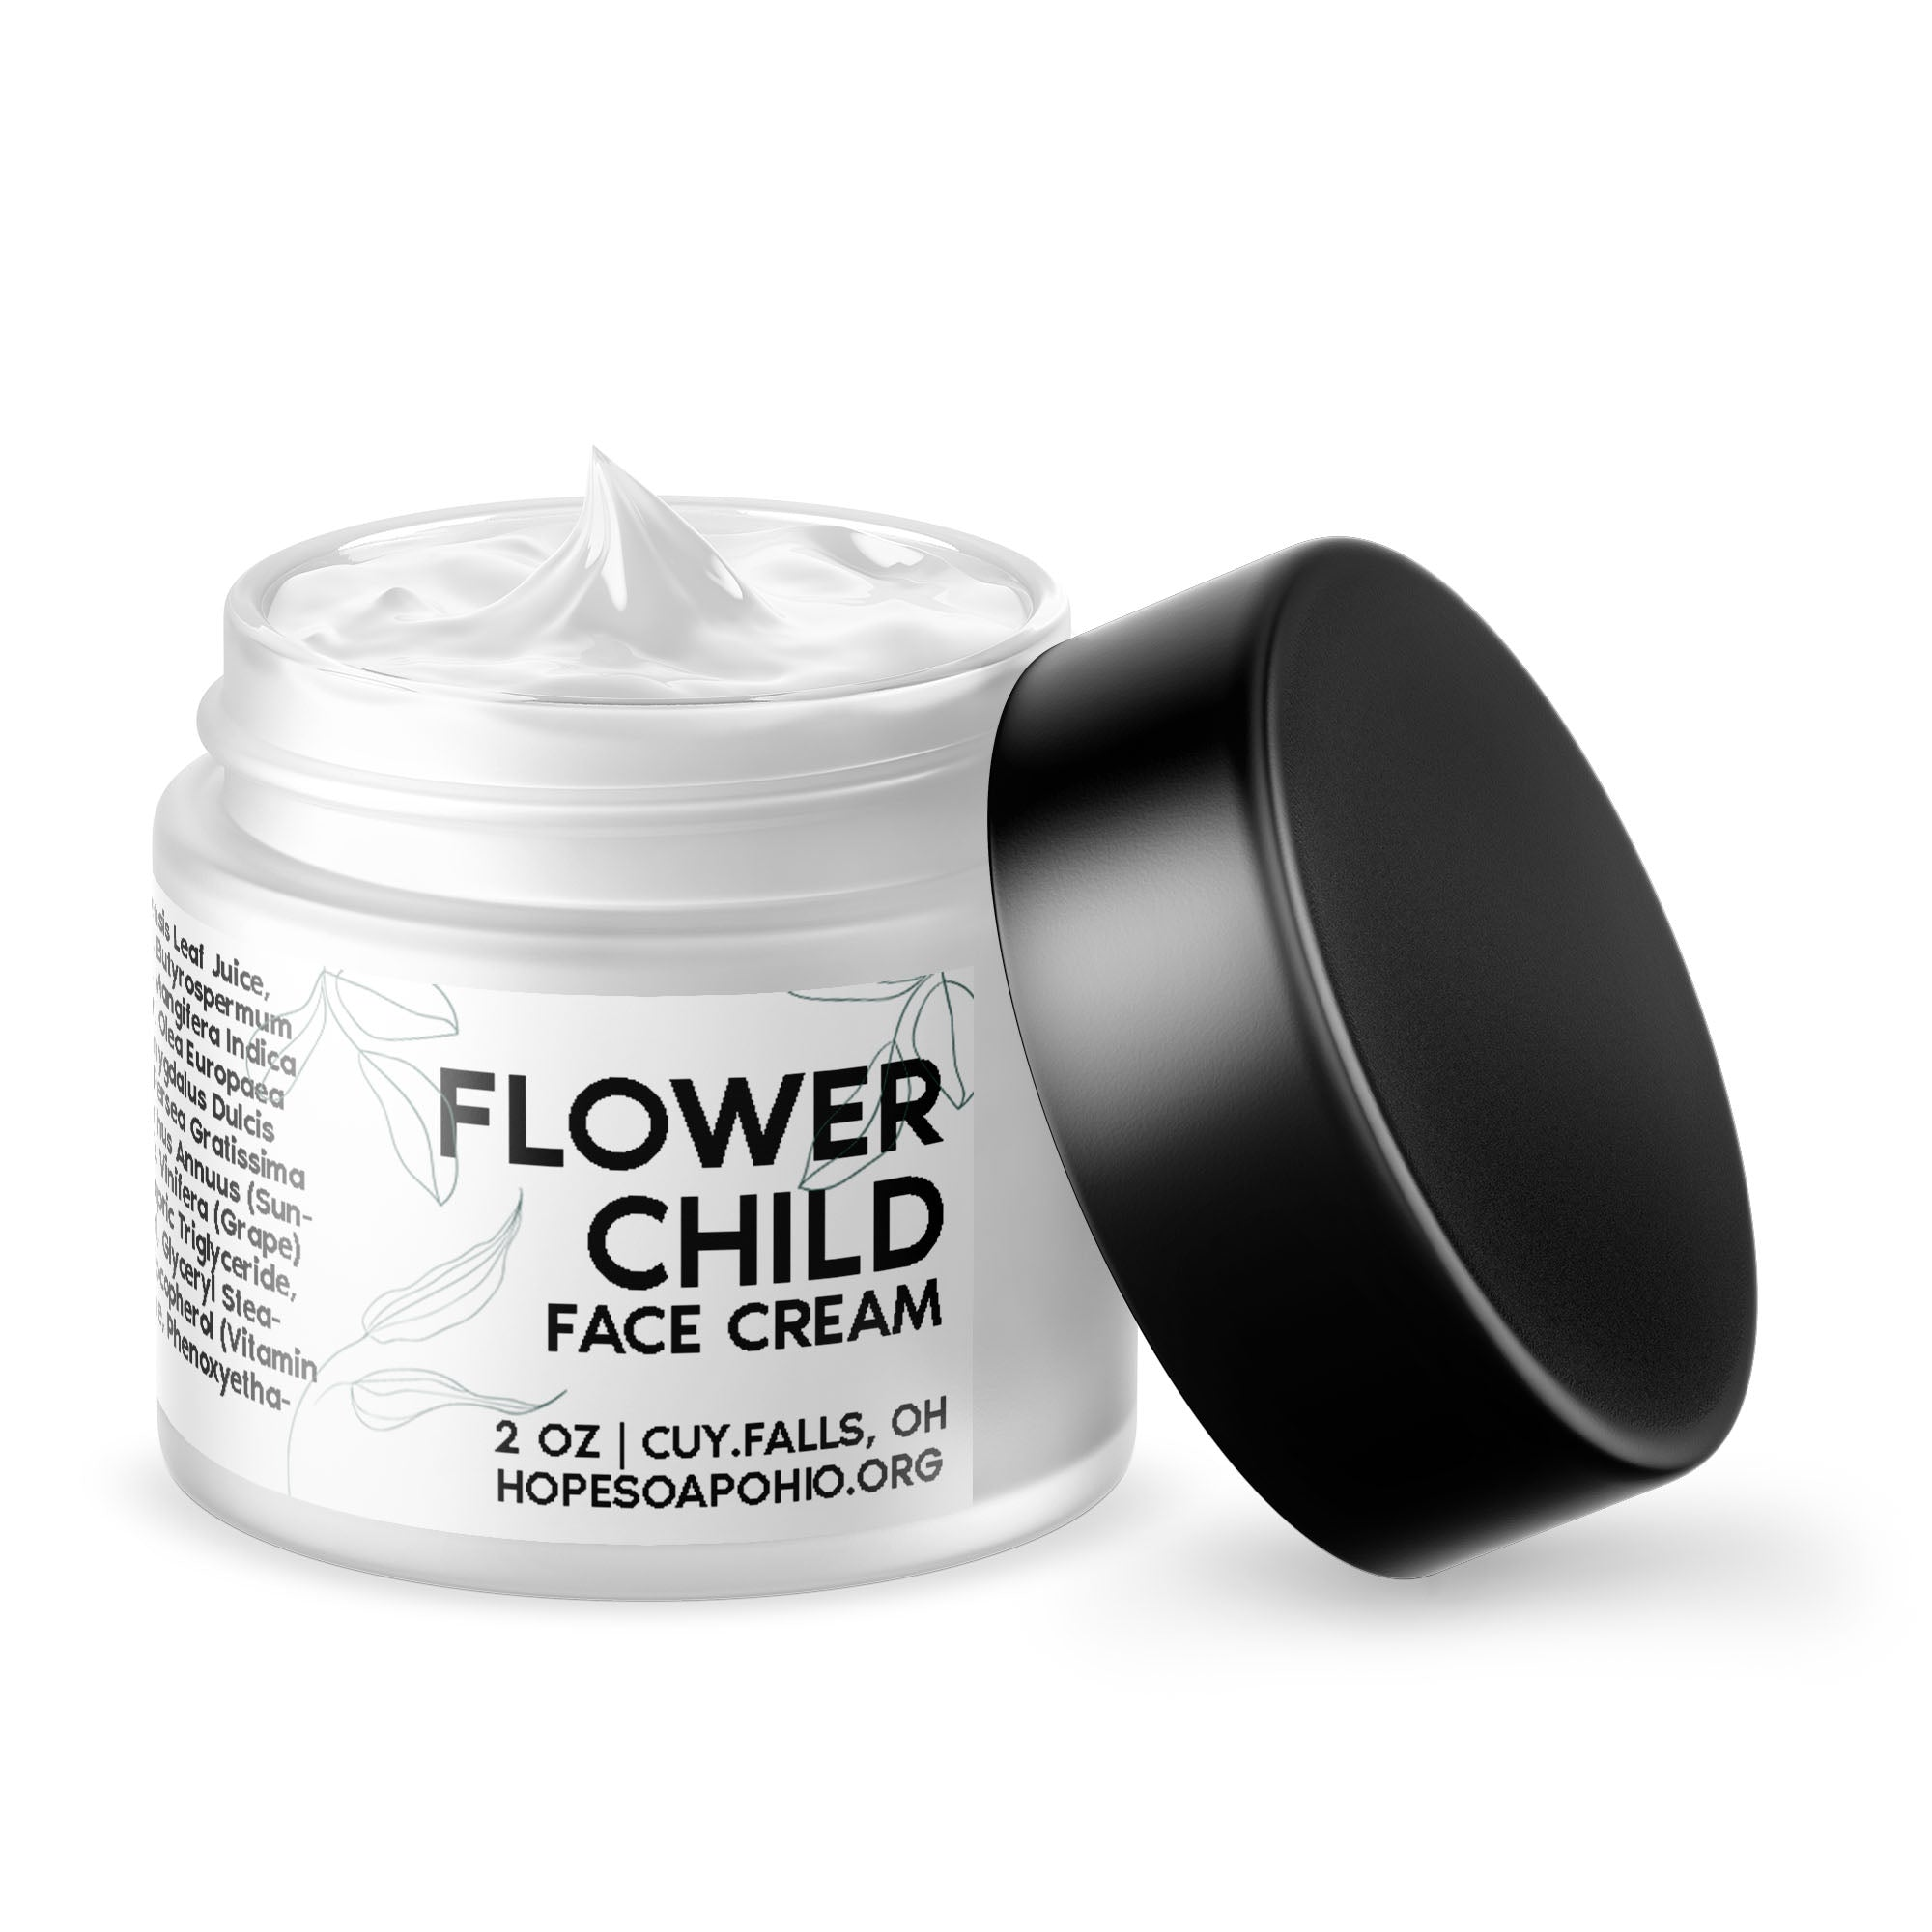 Flower Child Face Cream - HOPESOAPOHIO